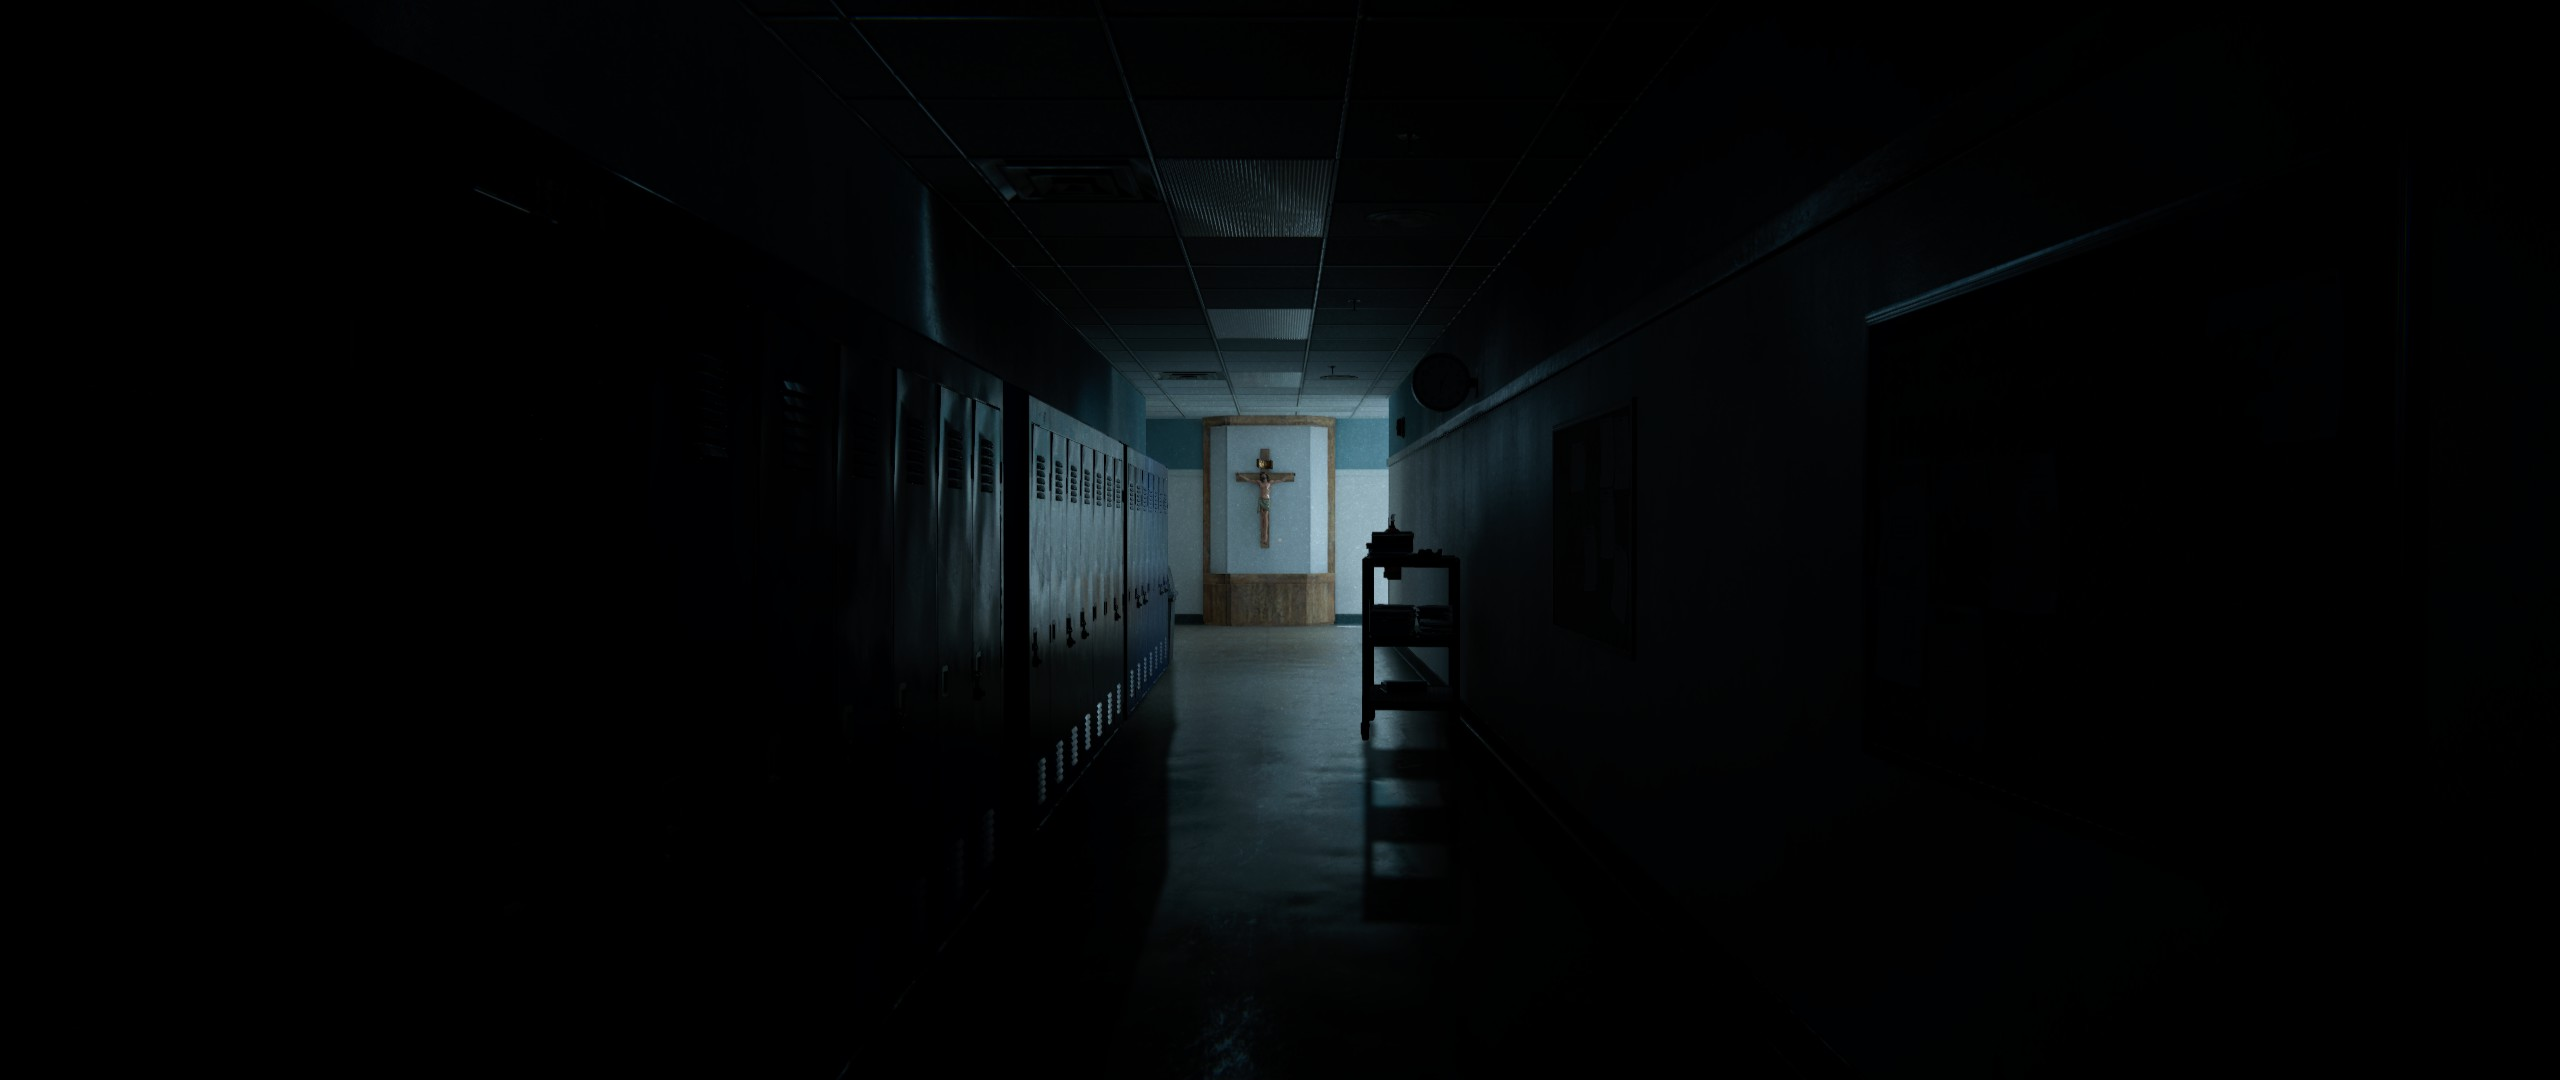 17 Outlast 2 HD Wallpapers Background Images 2560x1080